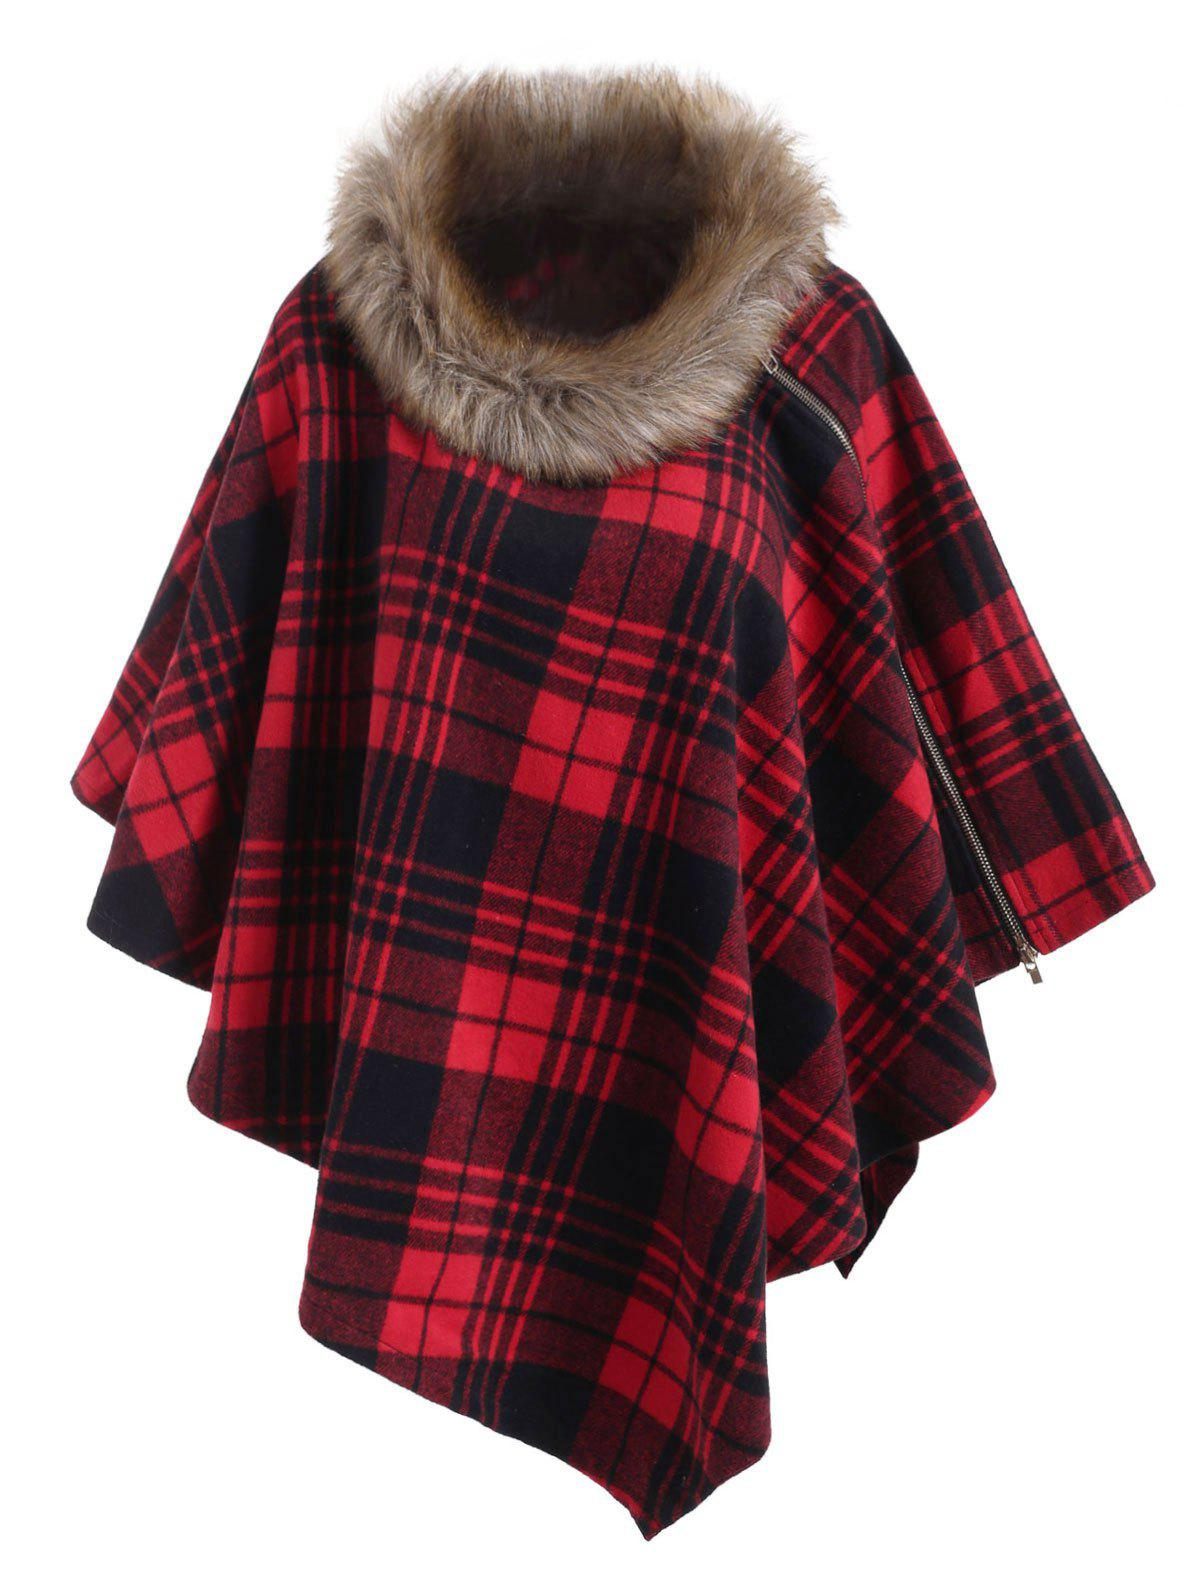 Convertible Faux Fur Collar Plaid Zipper Poncho - RED WINE M